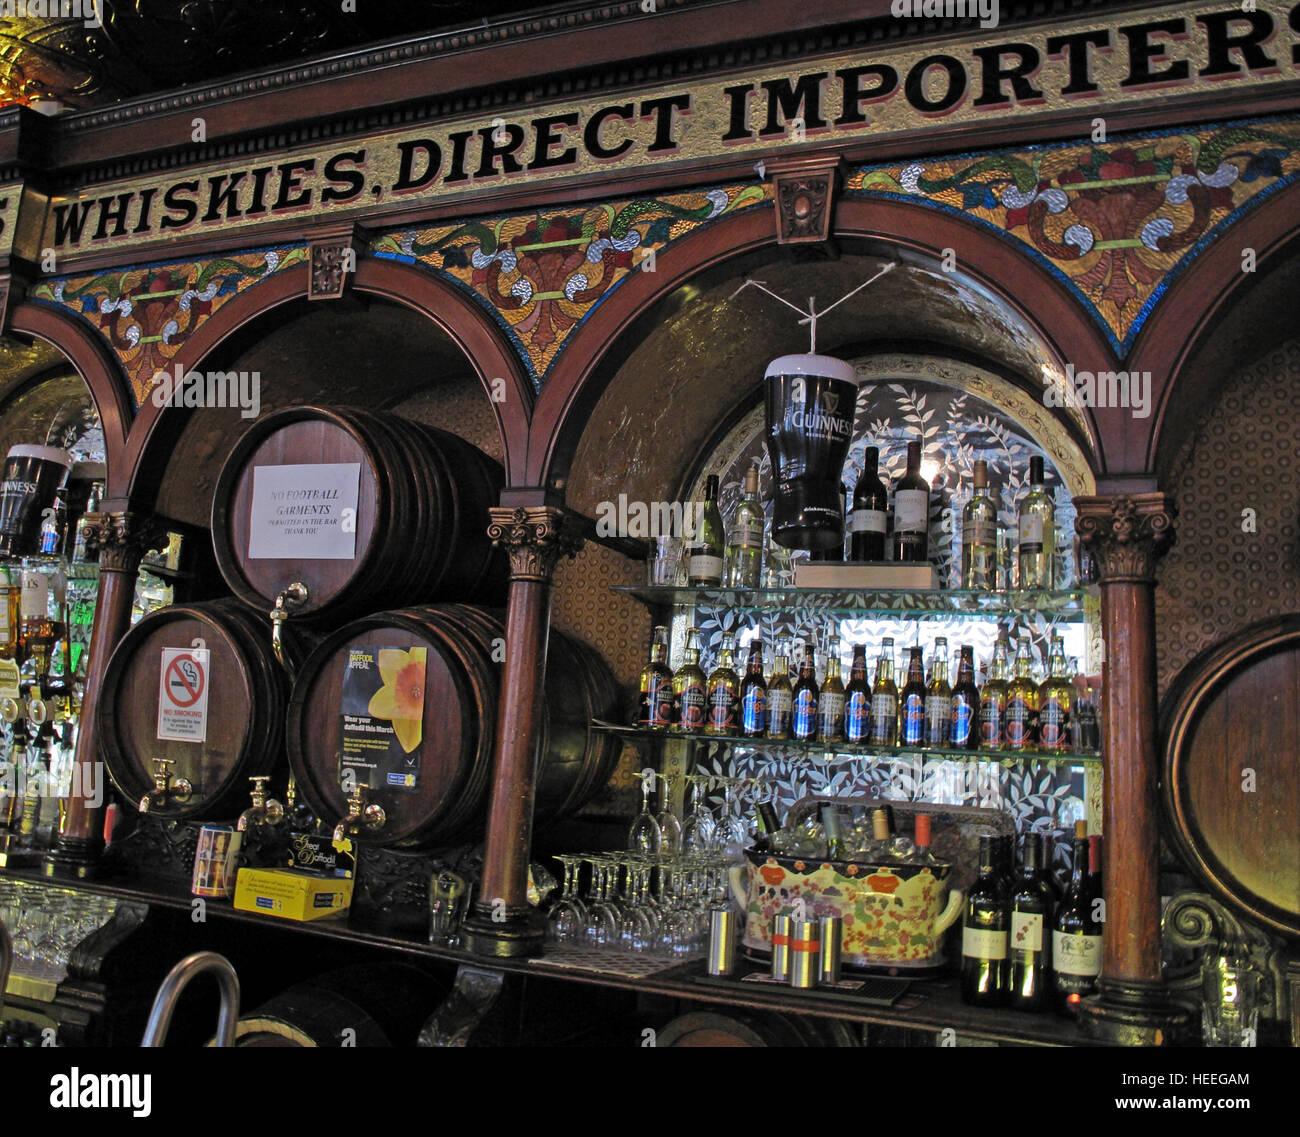 Great,Street,bars,beer,pub,public,house,interior,exterior,historic,history,gin,palace,Victoriana,Liquor,Saloon,Liquor Saloon,National Trust,great,lounge,famous,Crown Bar,unique,BT2,Felix OHanlon,Tavern,beer,wine,spirit,whiskies,direct,barrel,barrels,Guinness,GoTonySmith,@HotpixUK,Tony,Smith,UK,GB,Great,Britain,United,Kingdom,Irish,British,Ireland,problem,with,problem with,issue with,NI,Northern,Northern Ireland,Belfast,City,Centre,Art,Artists,the,troubles,The Troubles,Good Friday Agreement,Peace,honour,painting,wall,walls,tribute,republicanism,Fight,Justice,West,Beal,feirste,martyrs,social,tour,tourism,tourists,urban,six,counties,6,backdrop,county,Antrim,boozer,Real Ale,Real,Ale,CAMRA,beer,beers,Buy Pictures of,Buy Images Of,Images of,Stock Images,Tony Smith,United Kingdom,Great Britain,British Isles